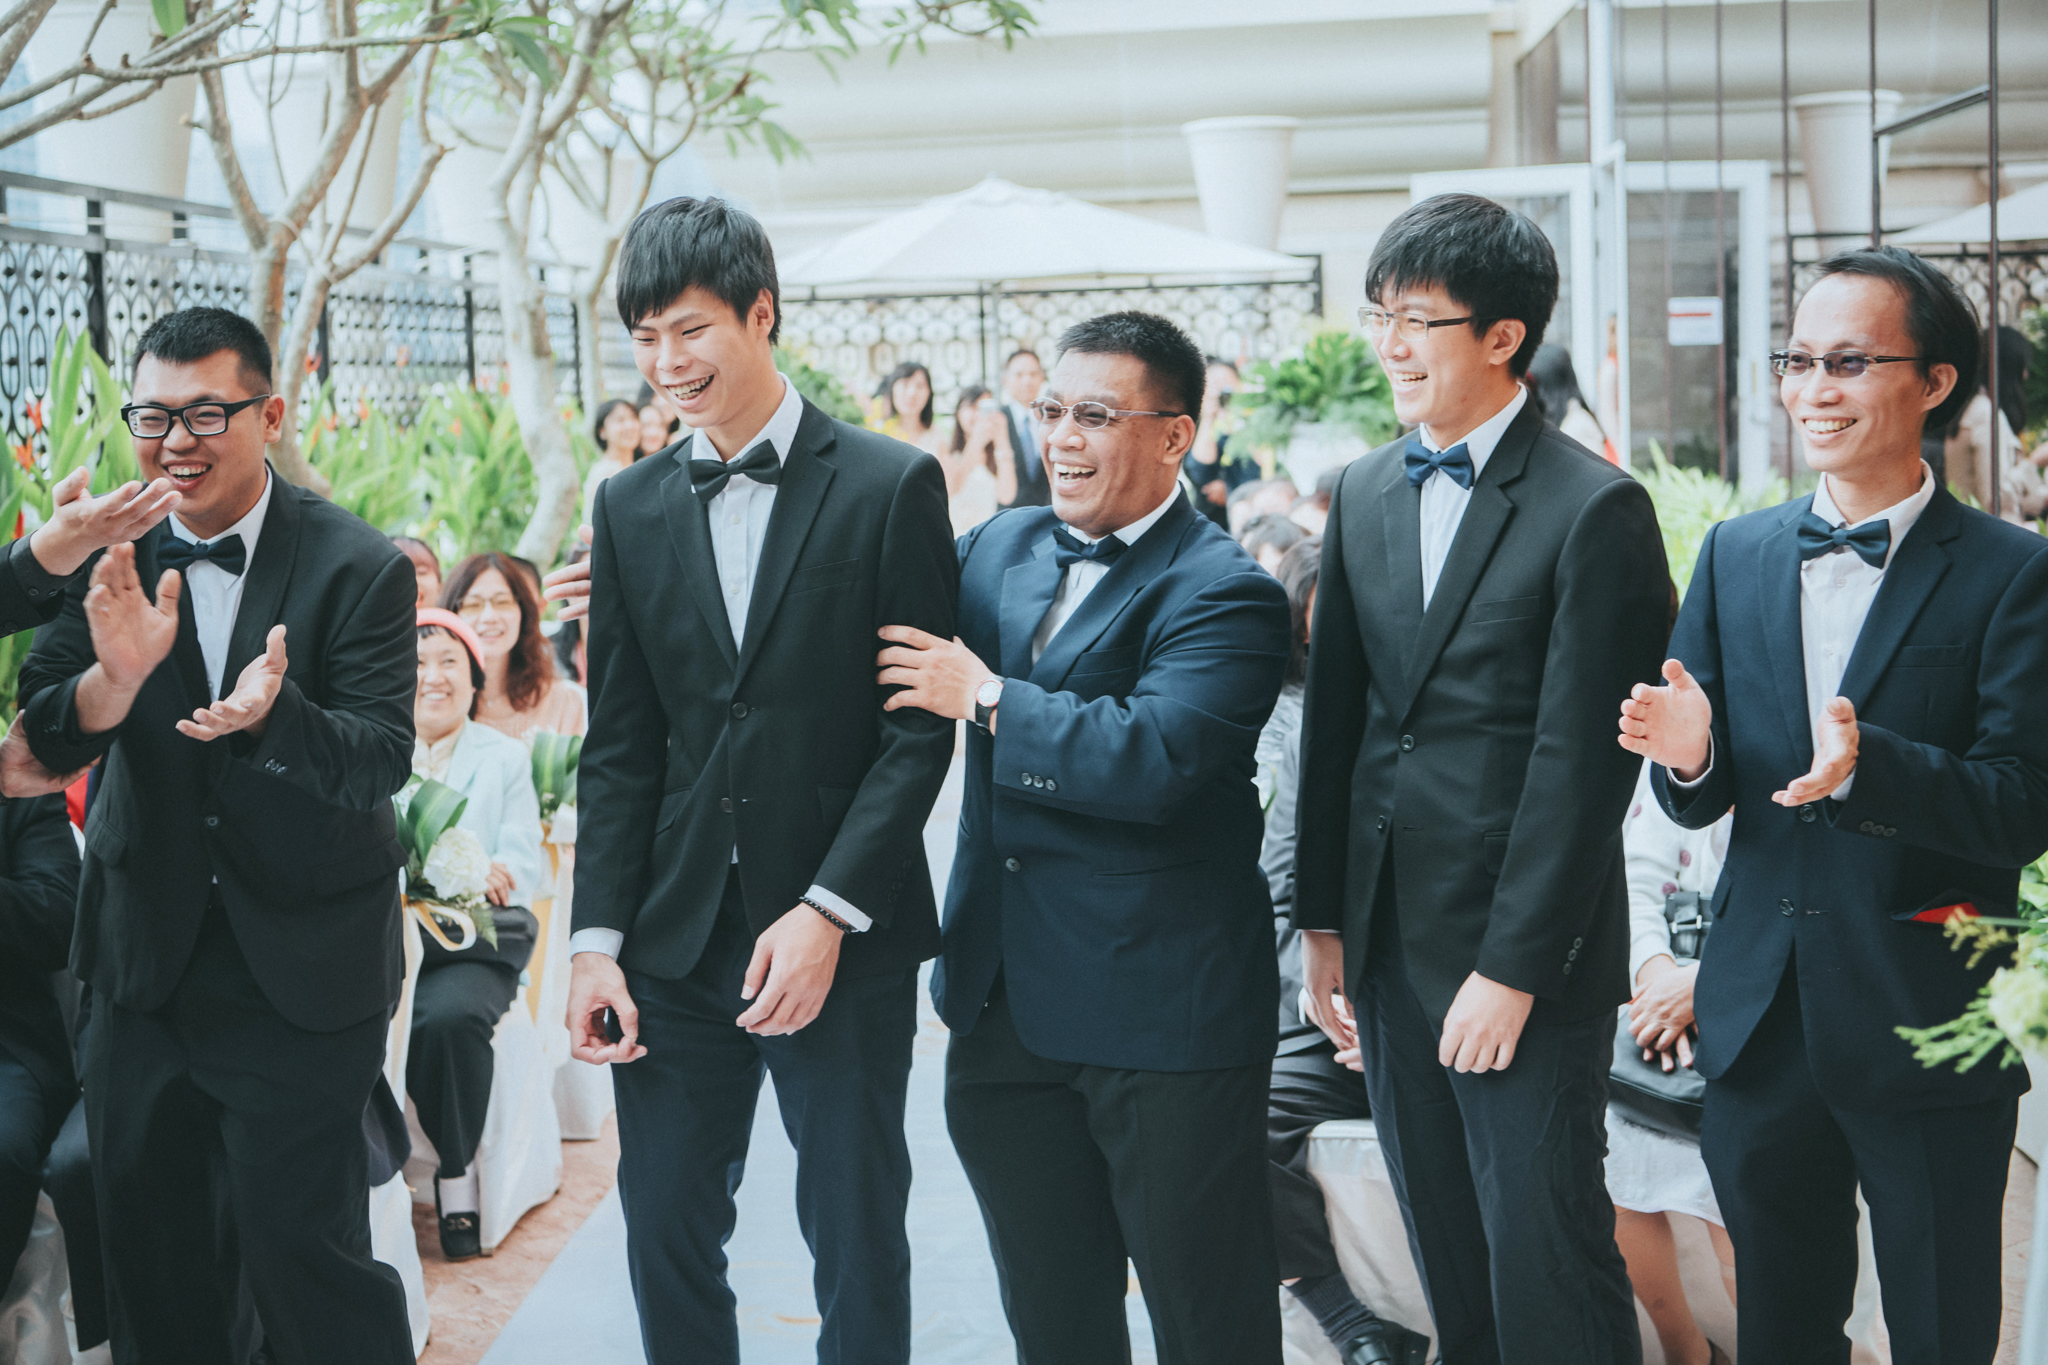 婚禮紀錄, 雙攝影師, 藝術婚禮, Donfer, Donfer Photography, EASTERN WEDDING, Wedding Day, 林皇宮